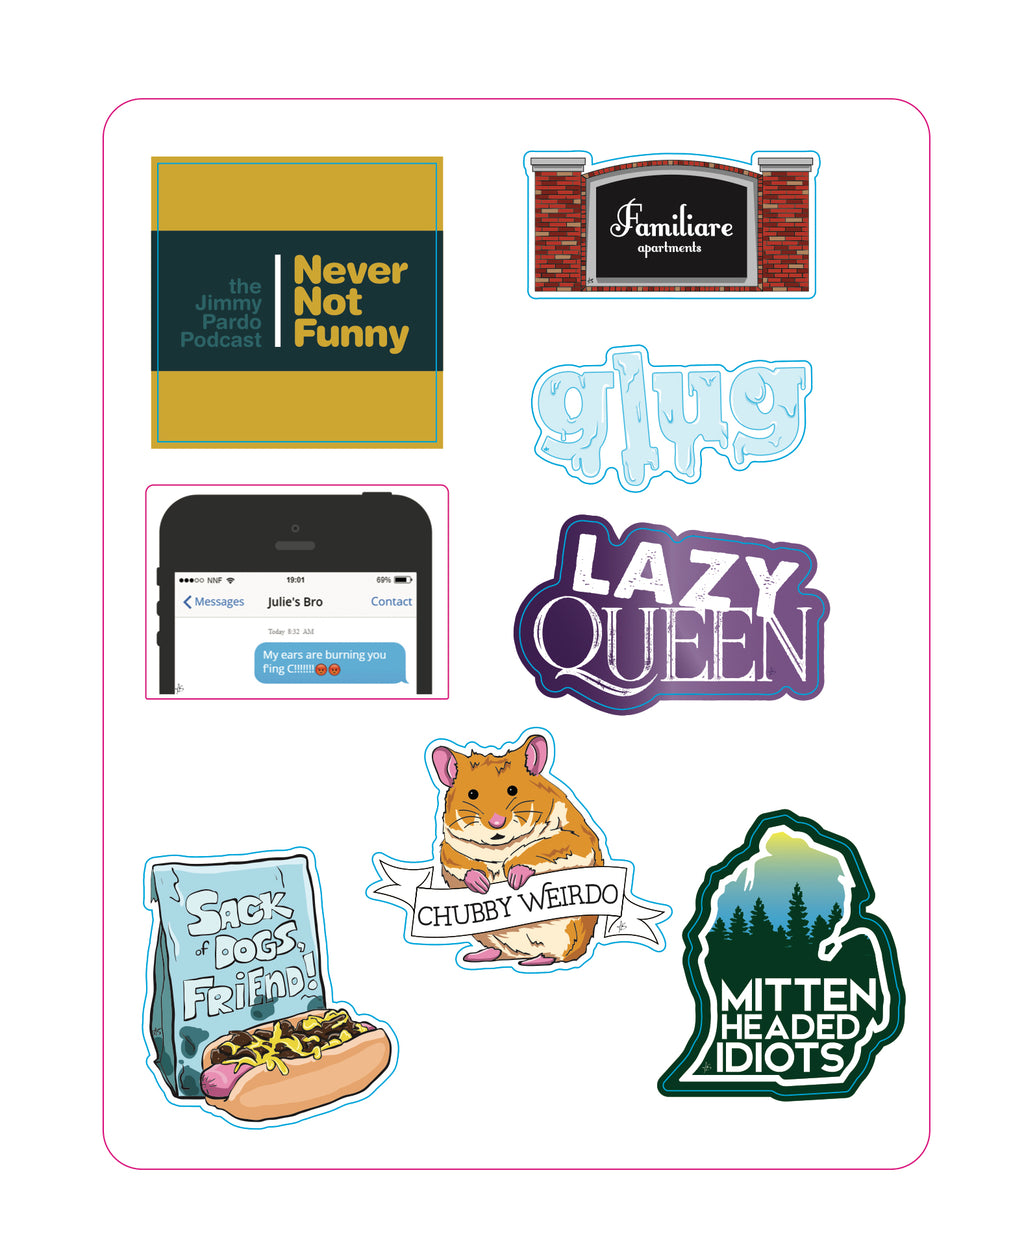 Never Not Funny: Inside Jokes sticker sheet